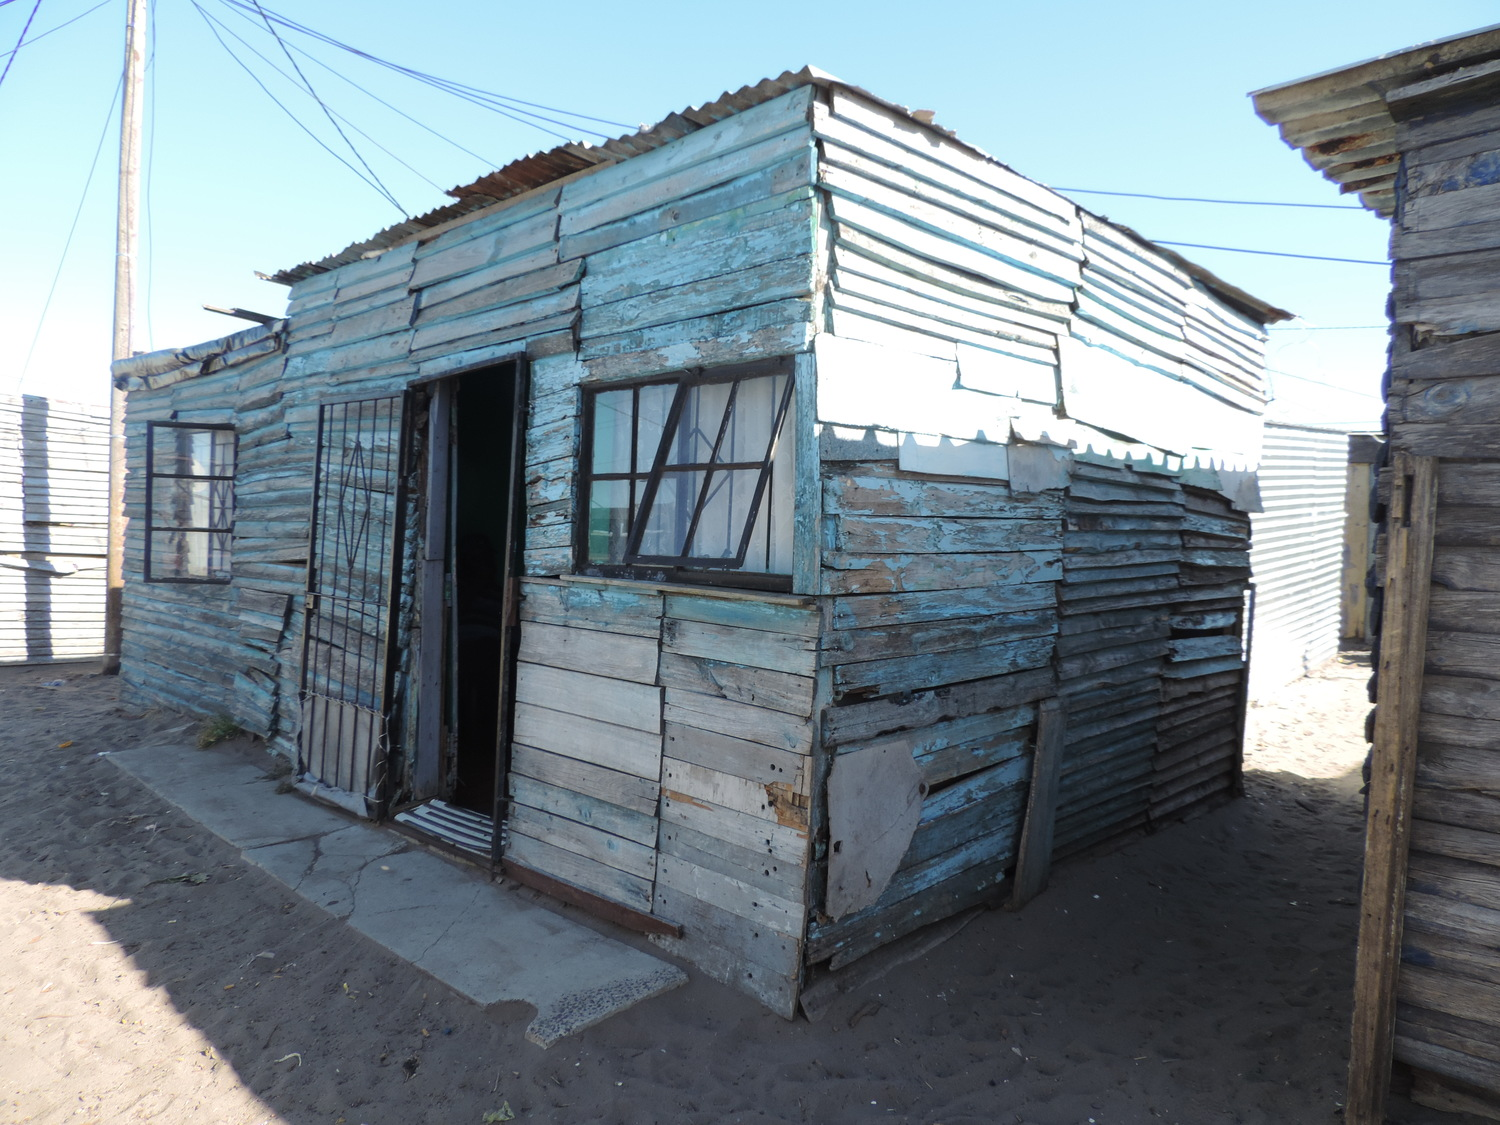 south africa the beauty contradiction a photo essay by chaun langa township photo of small wood shingled shack electrical wires hanging low overhead